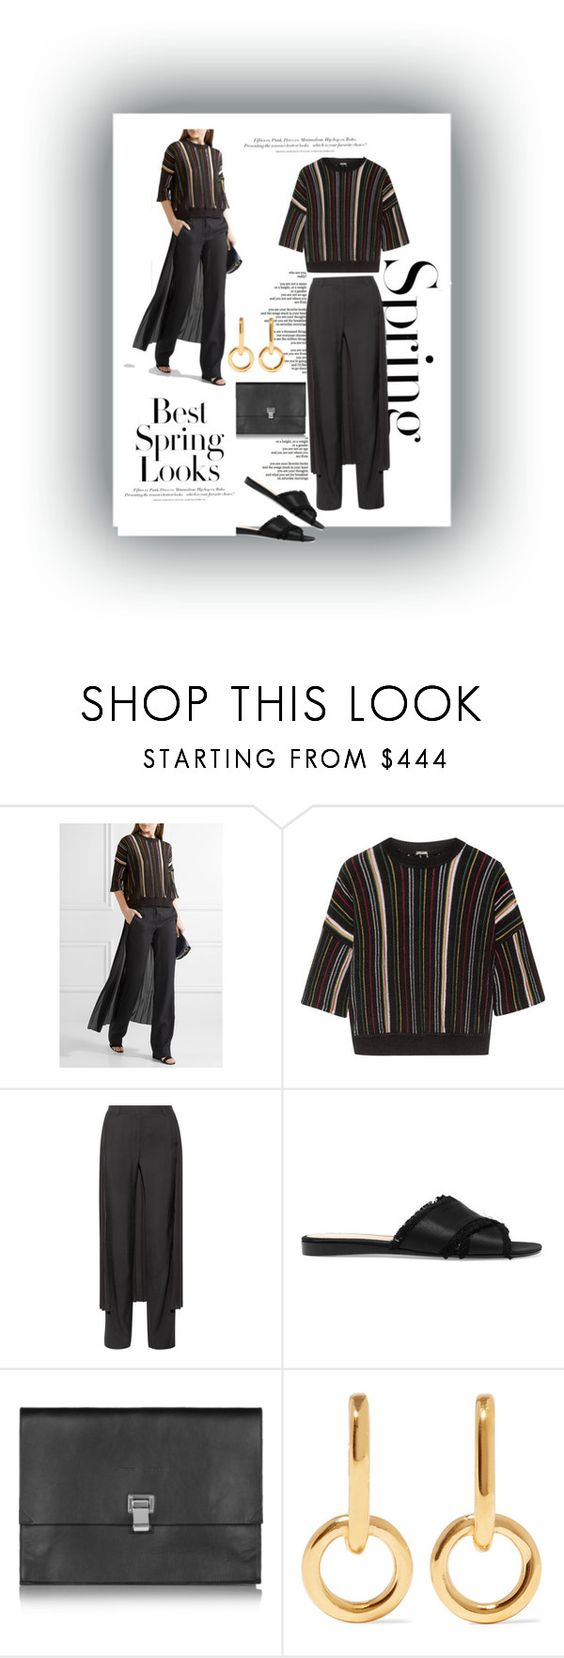 """""""Spring new casual fashion"""" by rousou ❤ liked on Polyvore featuring H&M, ADAM, Gianvito Rossi, Proenza Schouler and Sophie Buhai"""